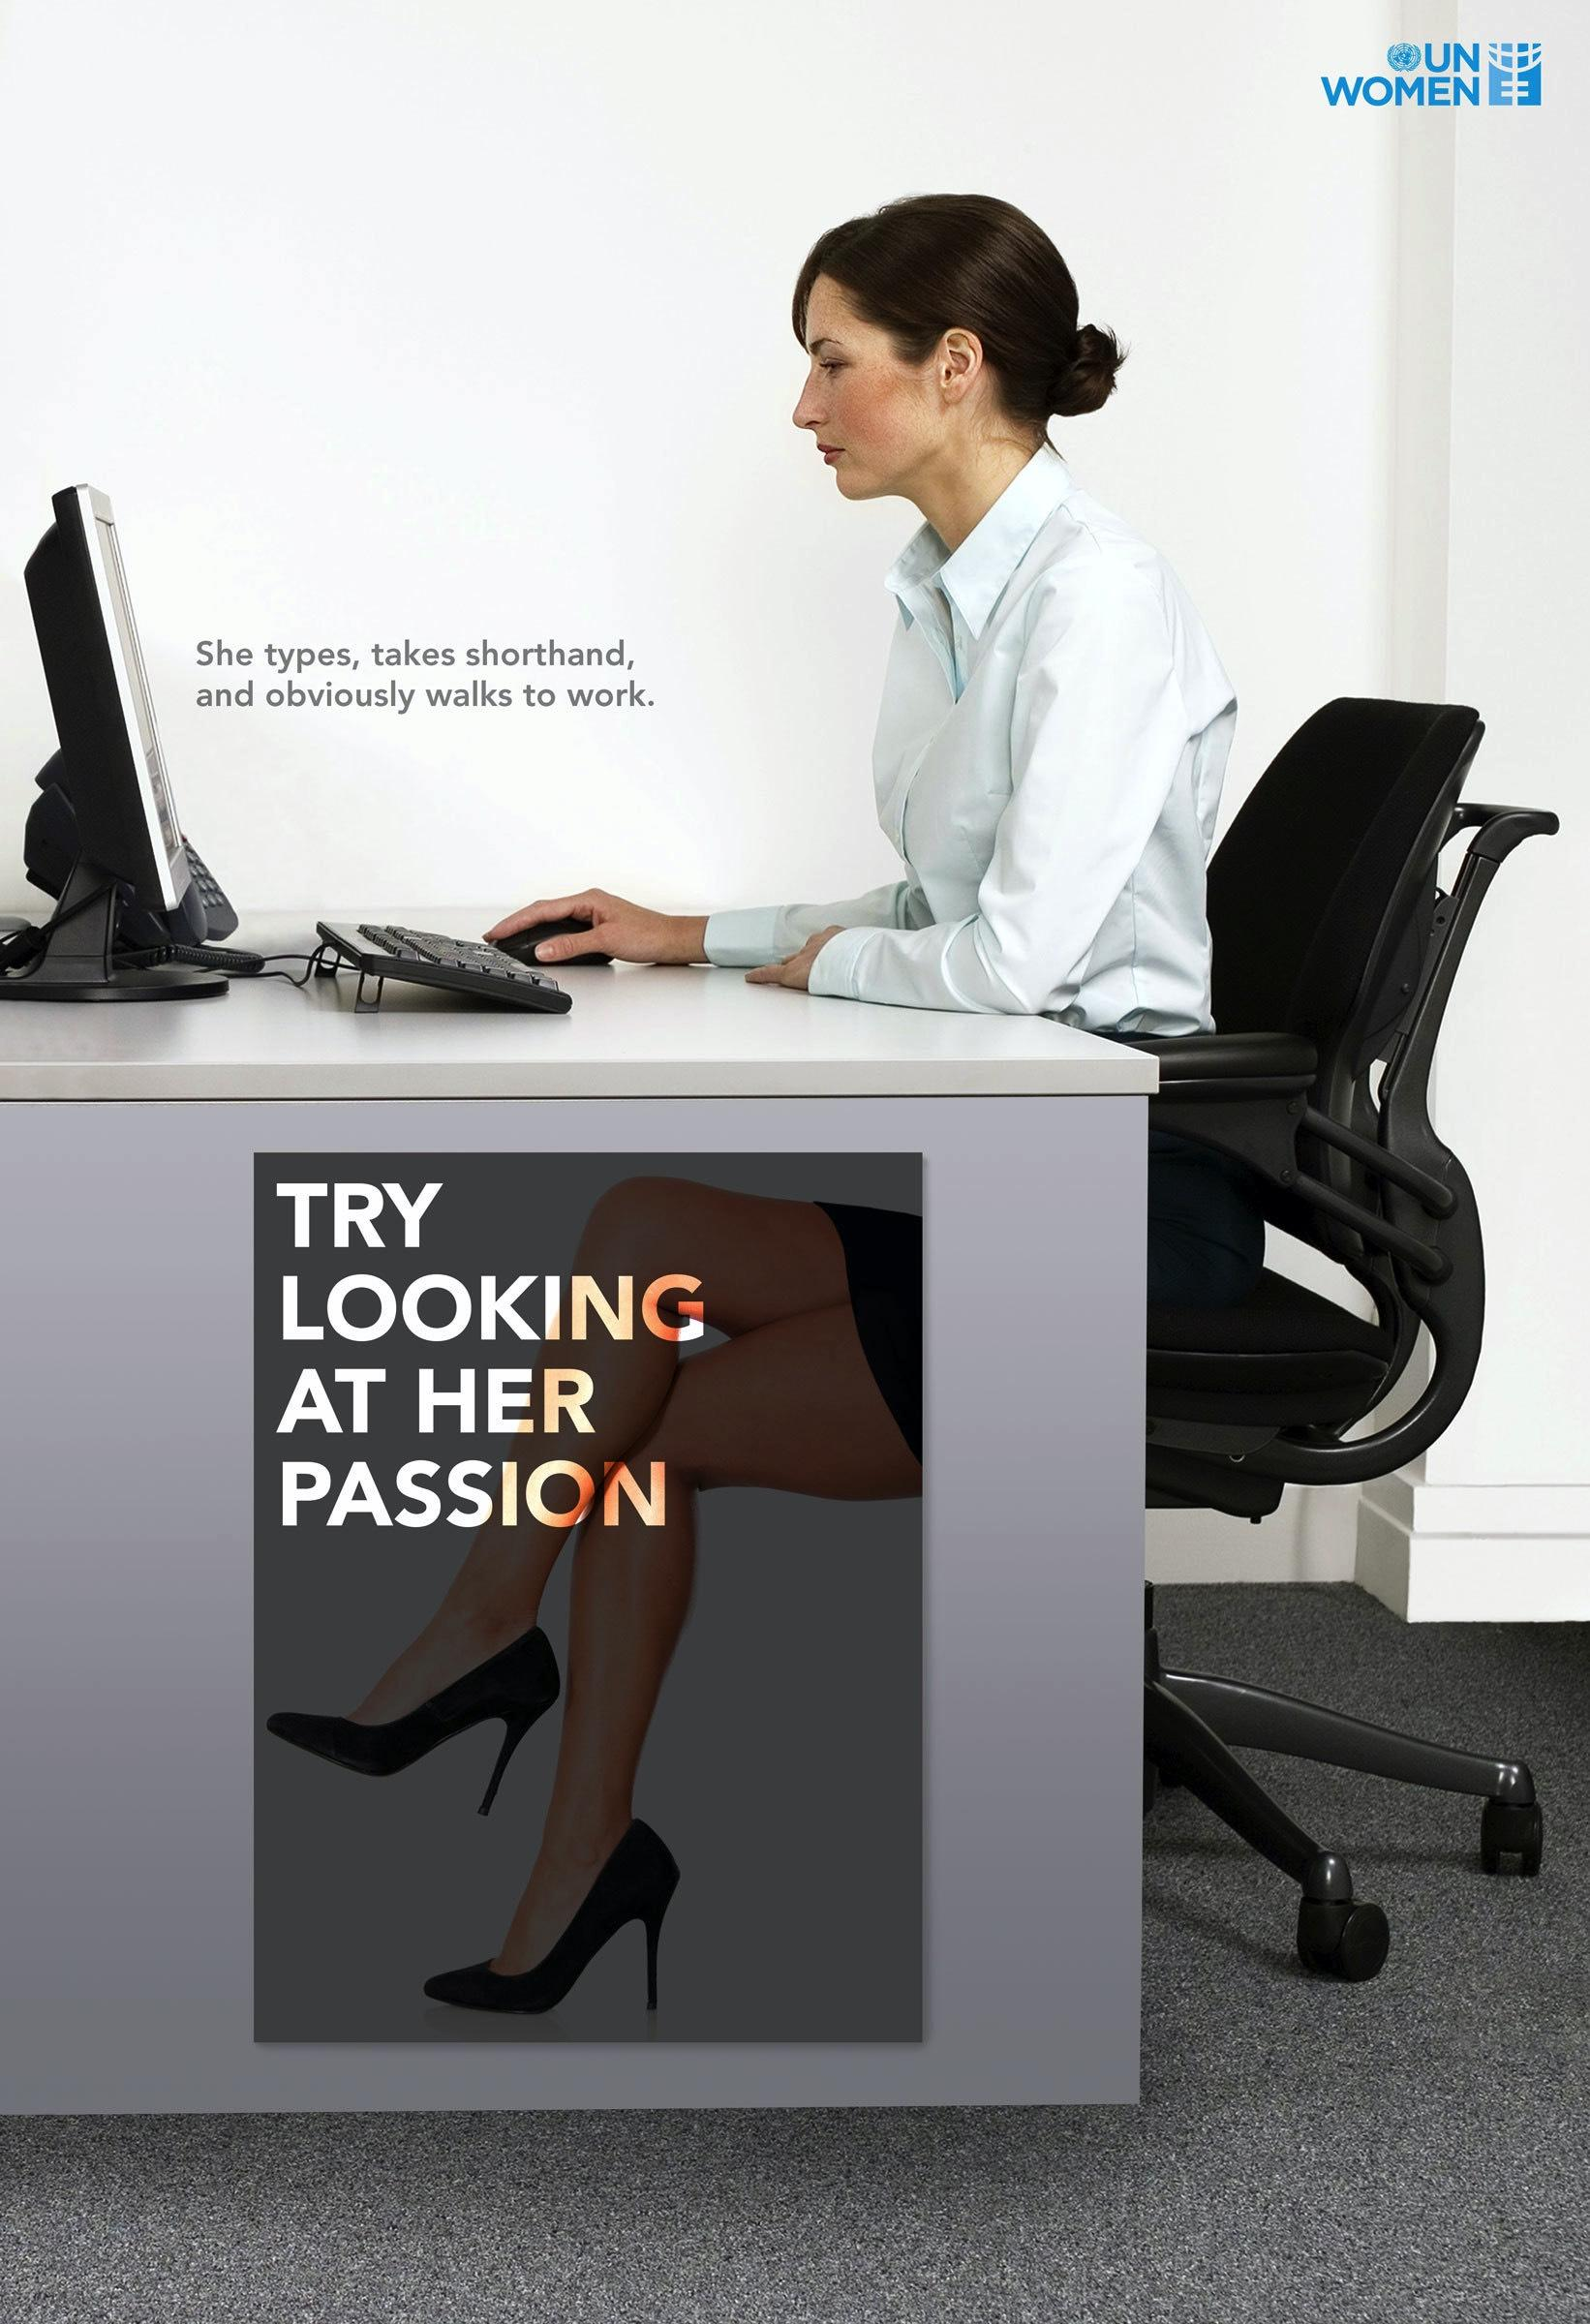 UN Women: Try looking at her ability